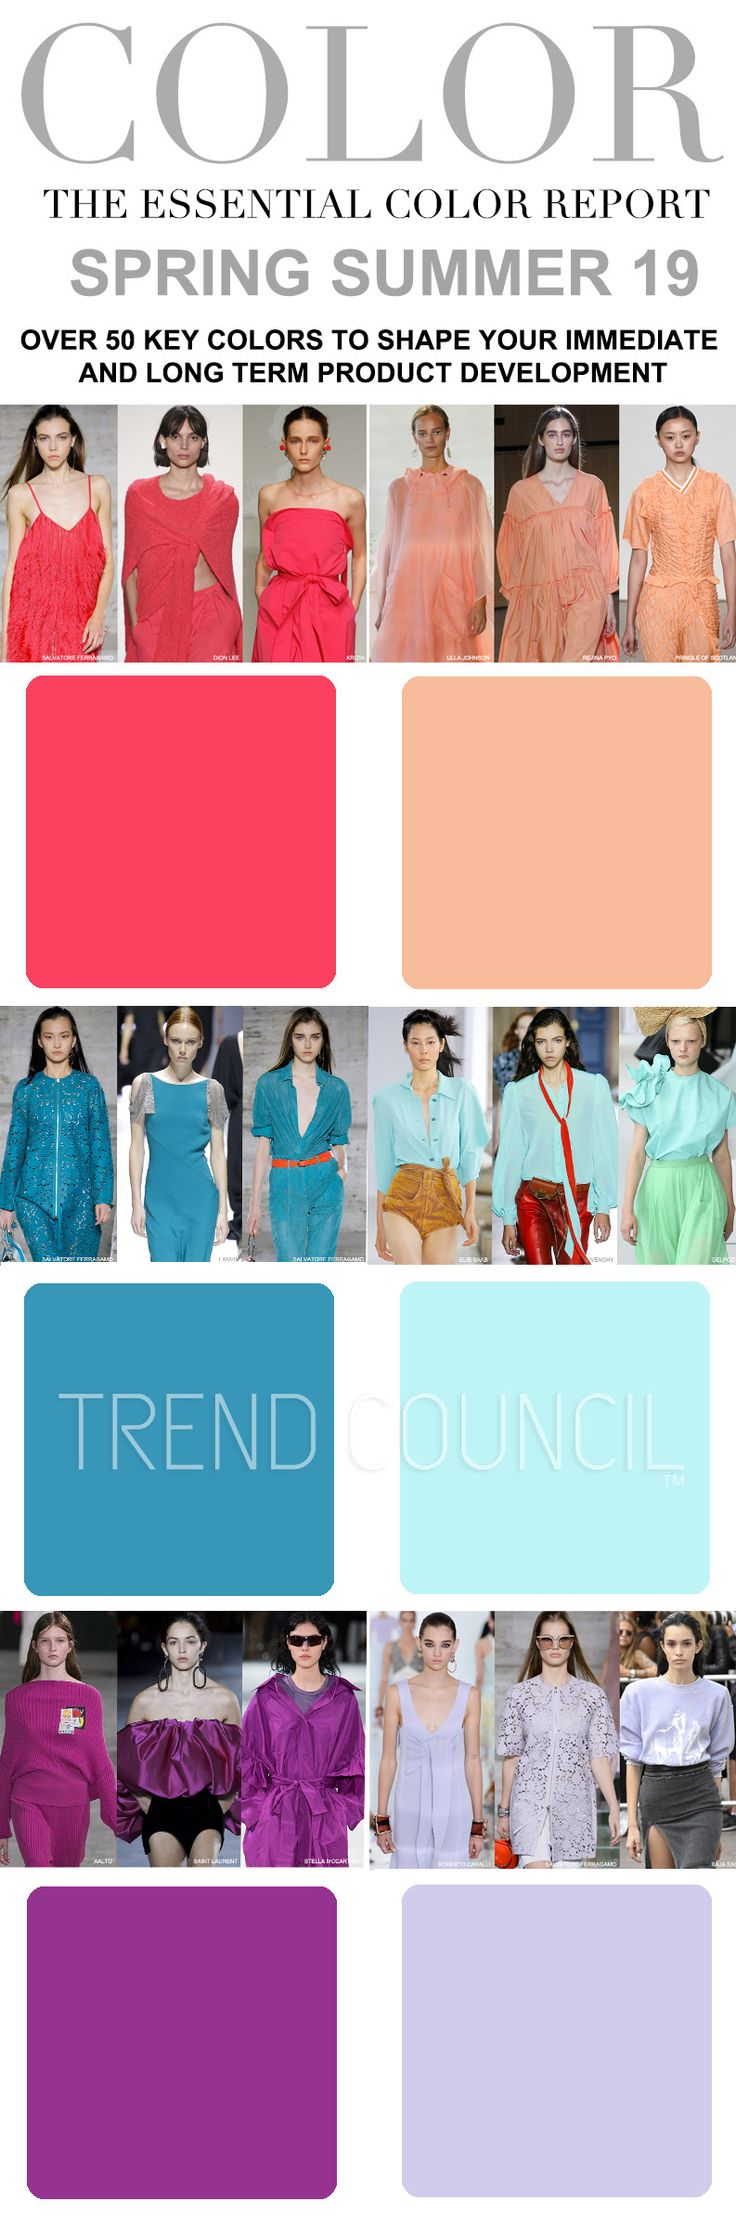 What Is Trend Forecasting In Fashion